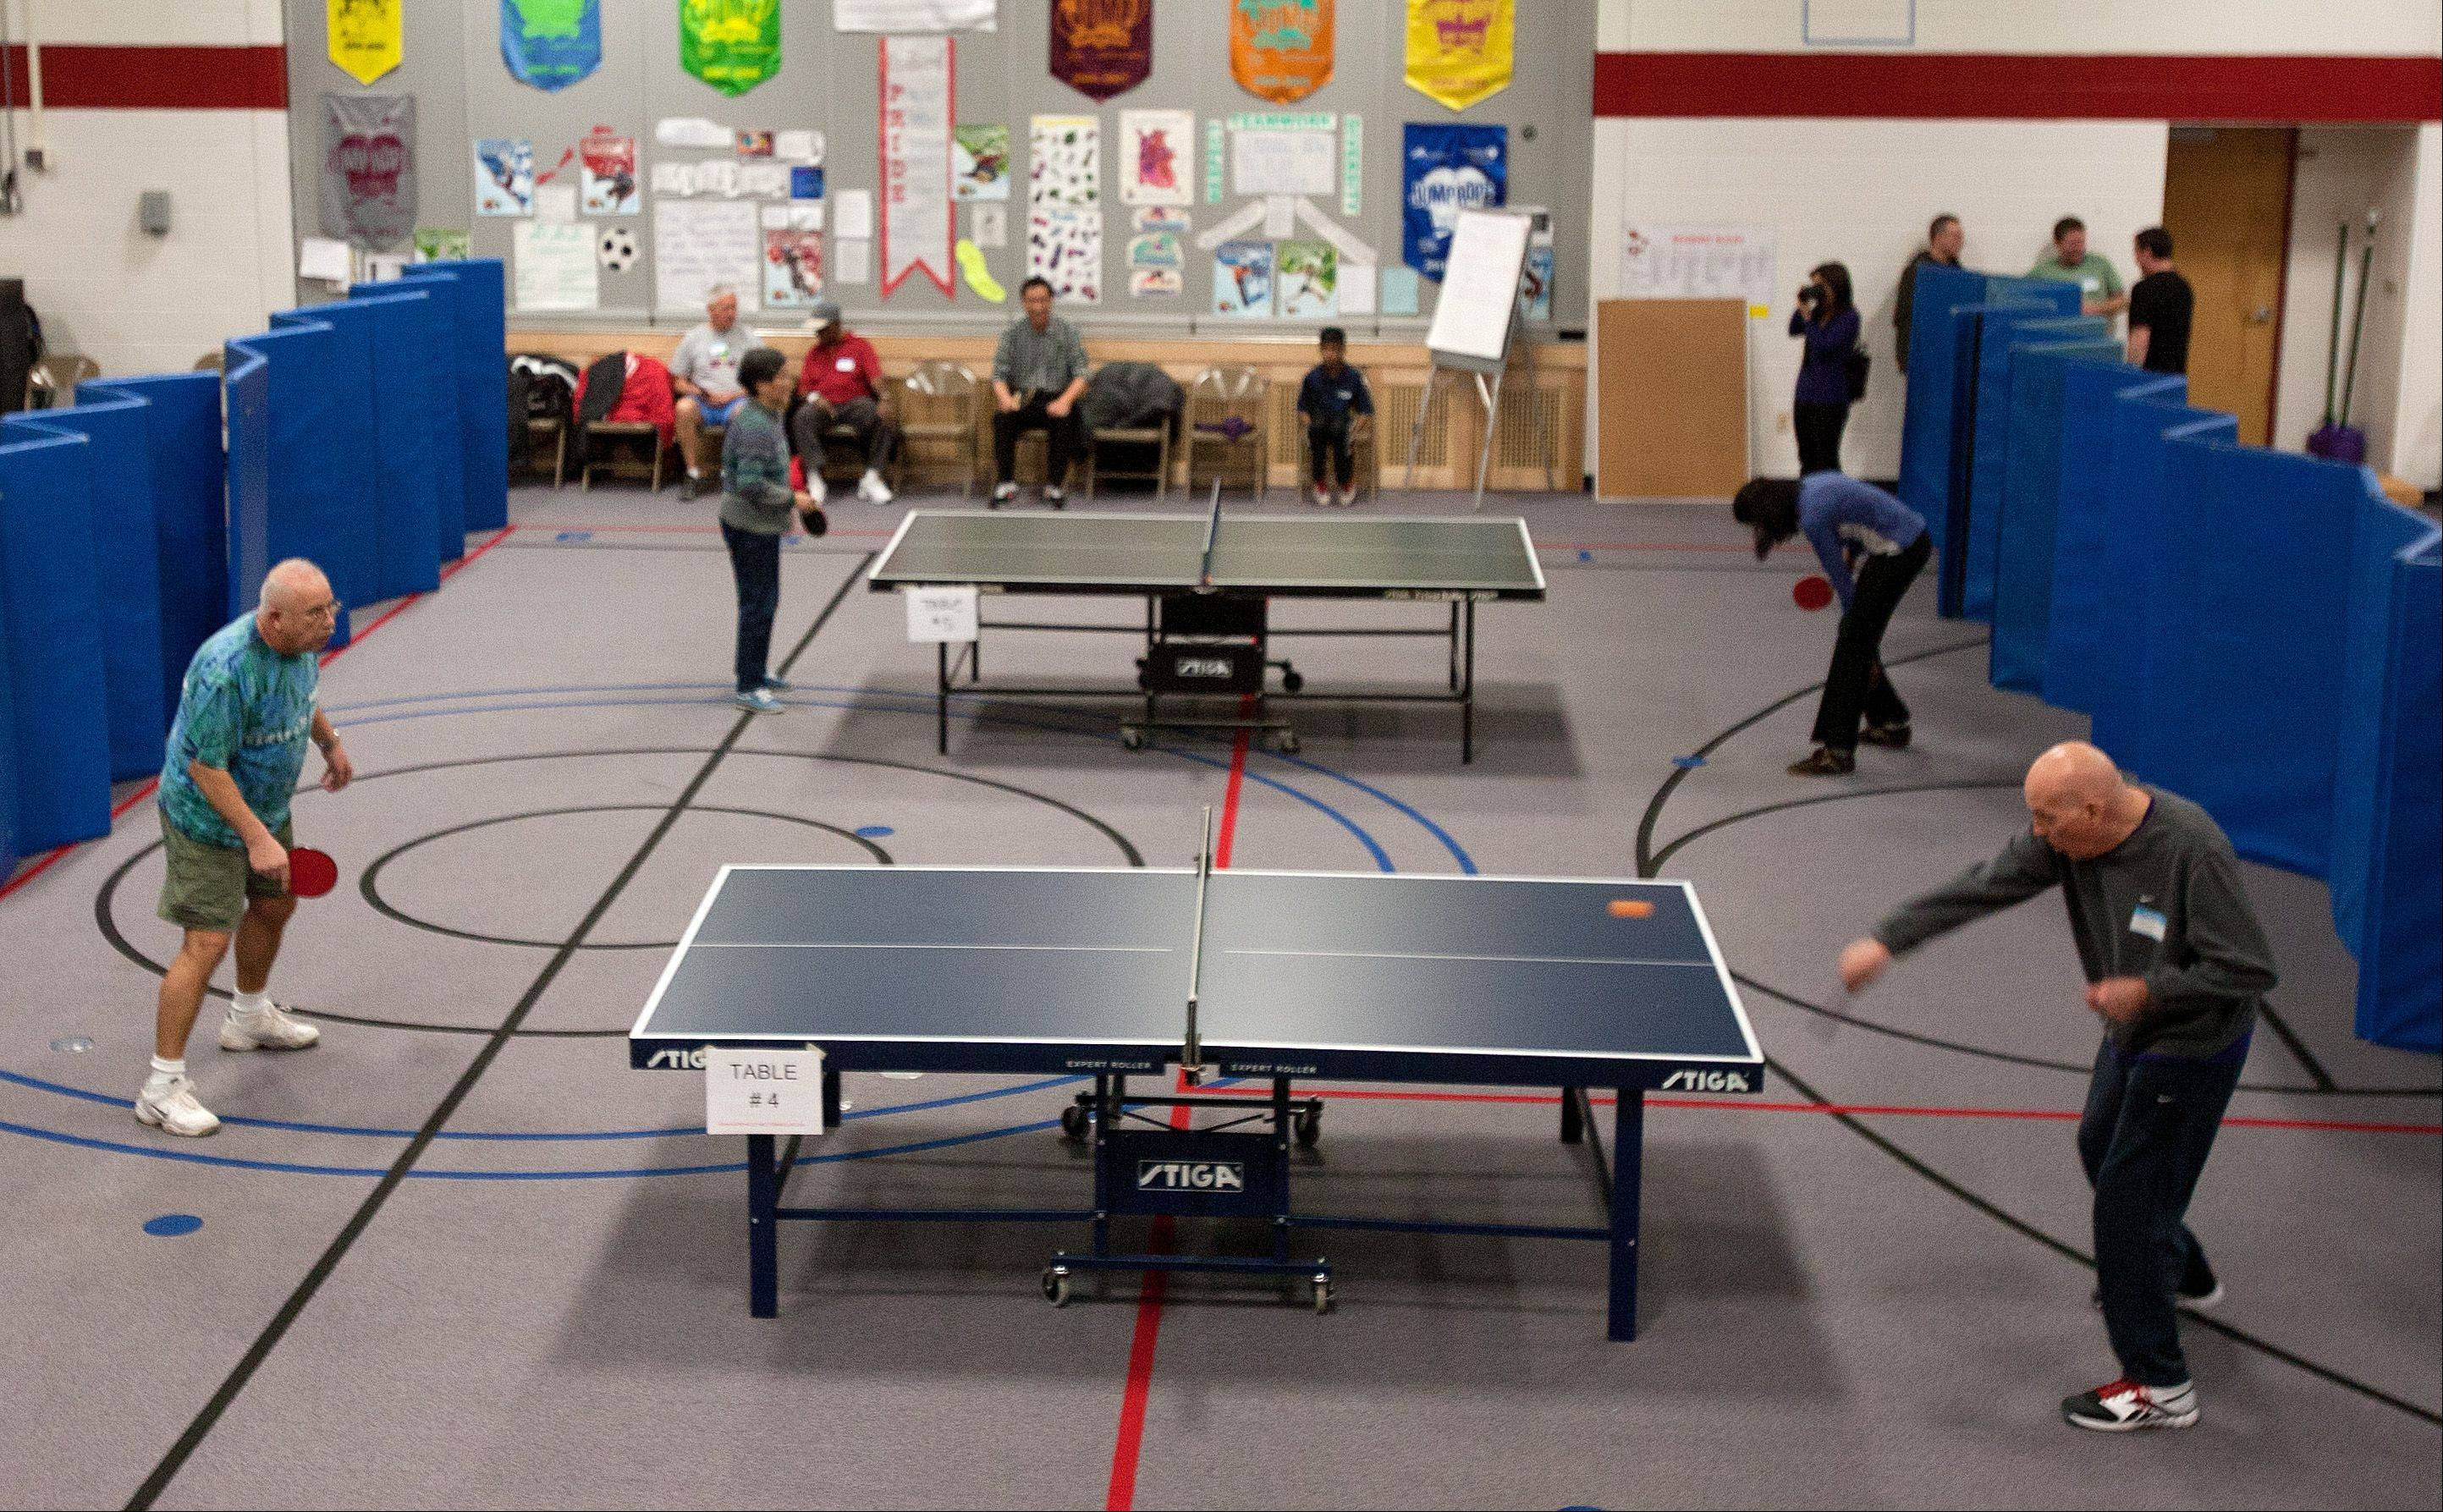 Anatoly Fuksman of Burbank volleys with Carl Bruebach of Plainfield on Saturday as the Naperville Park District and the Naperville Table Tennis Club host the city's annual table tennis championships at River Woods school.